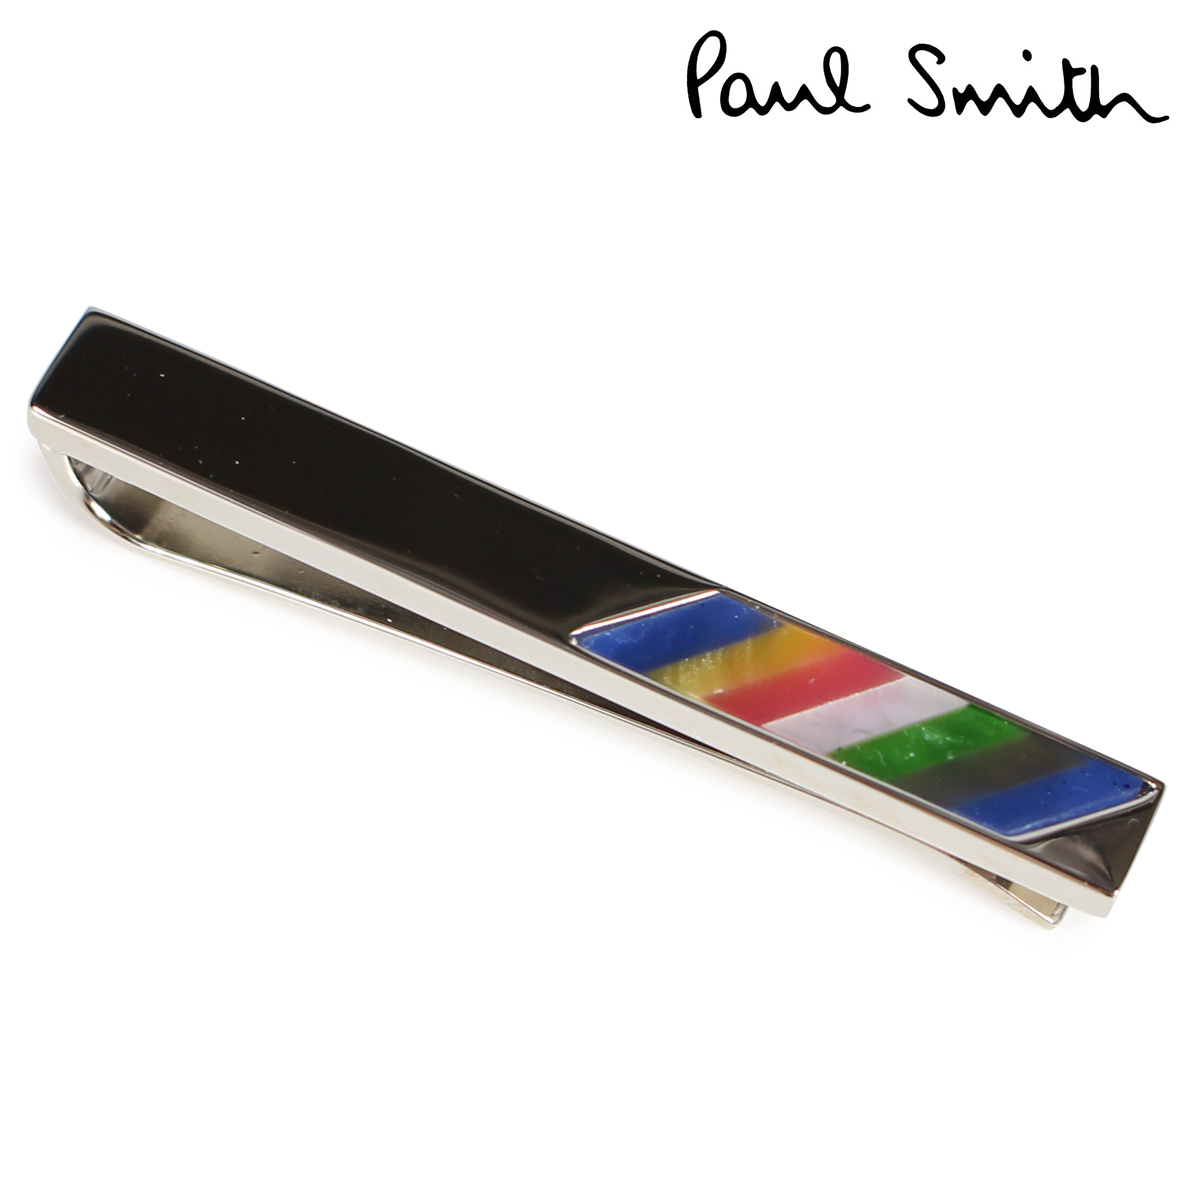 Paul Smith tiepin Paul Smith men Thailand bar TPIN ADSTRP silver